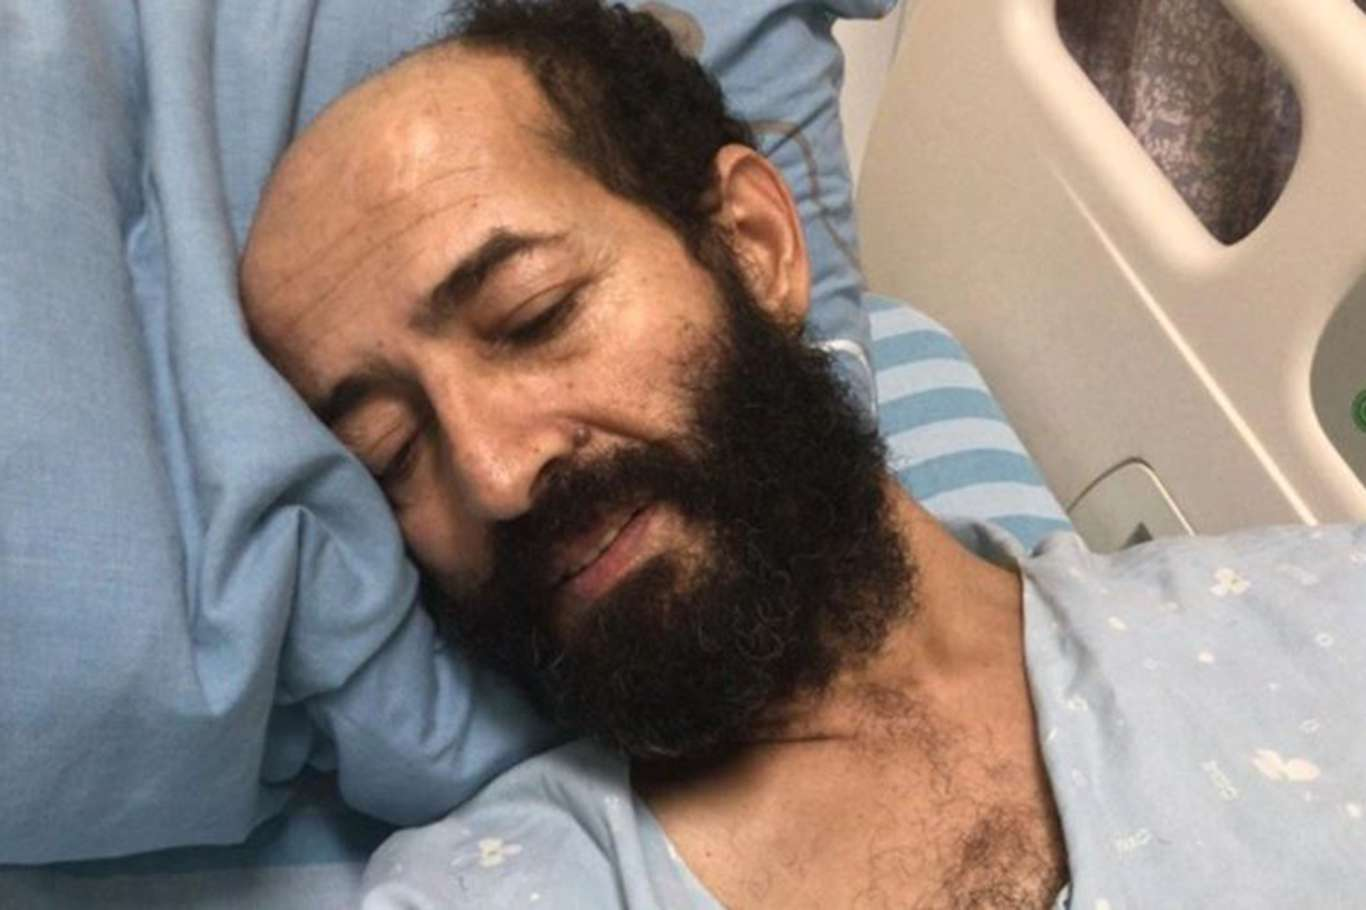 Palestinian prisoner Akhras enters days 88 of his hunger strike